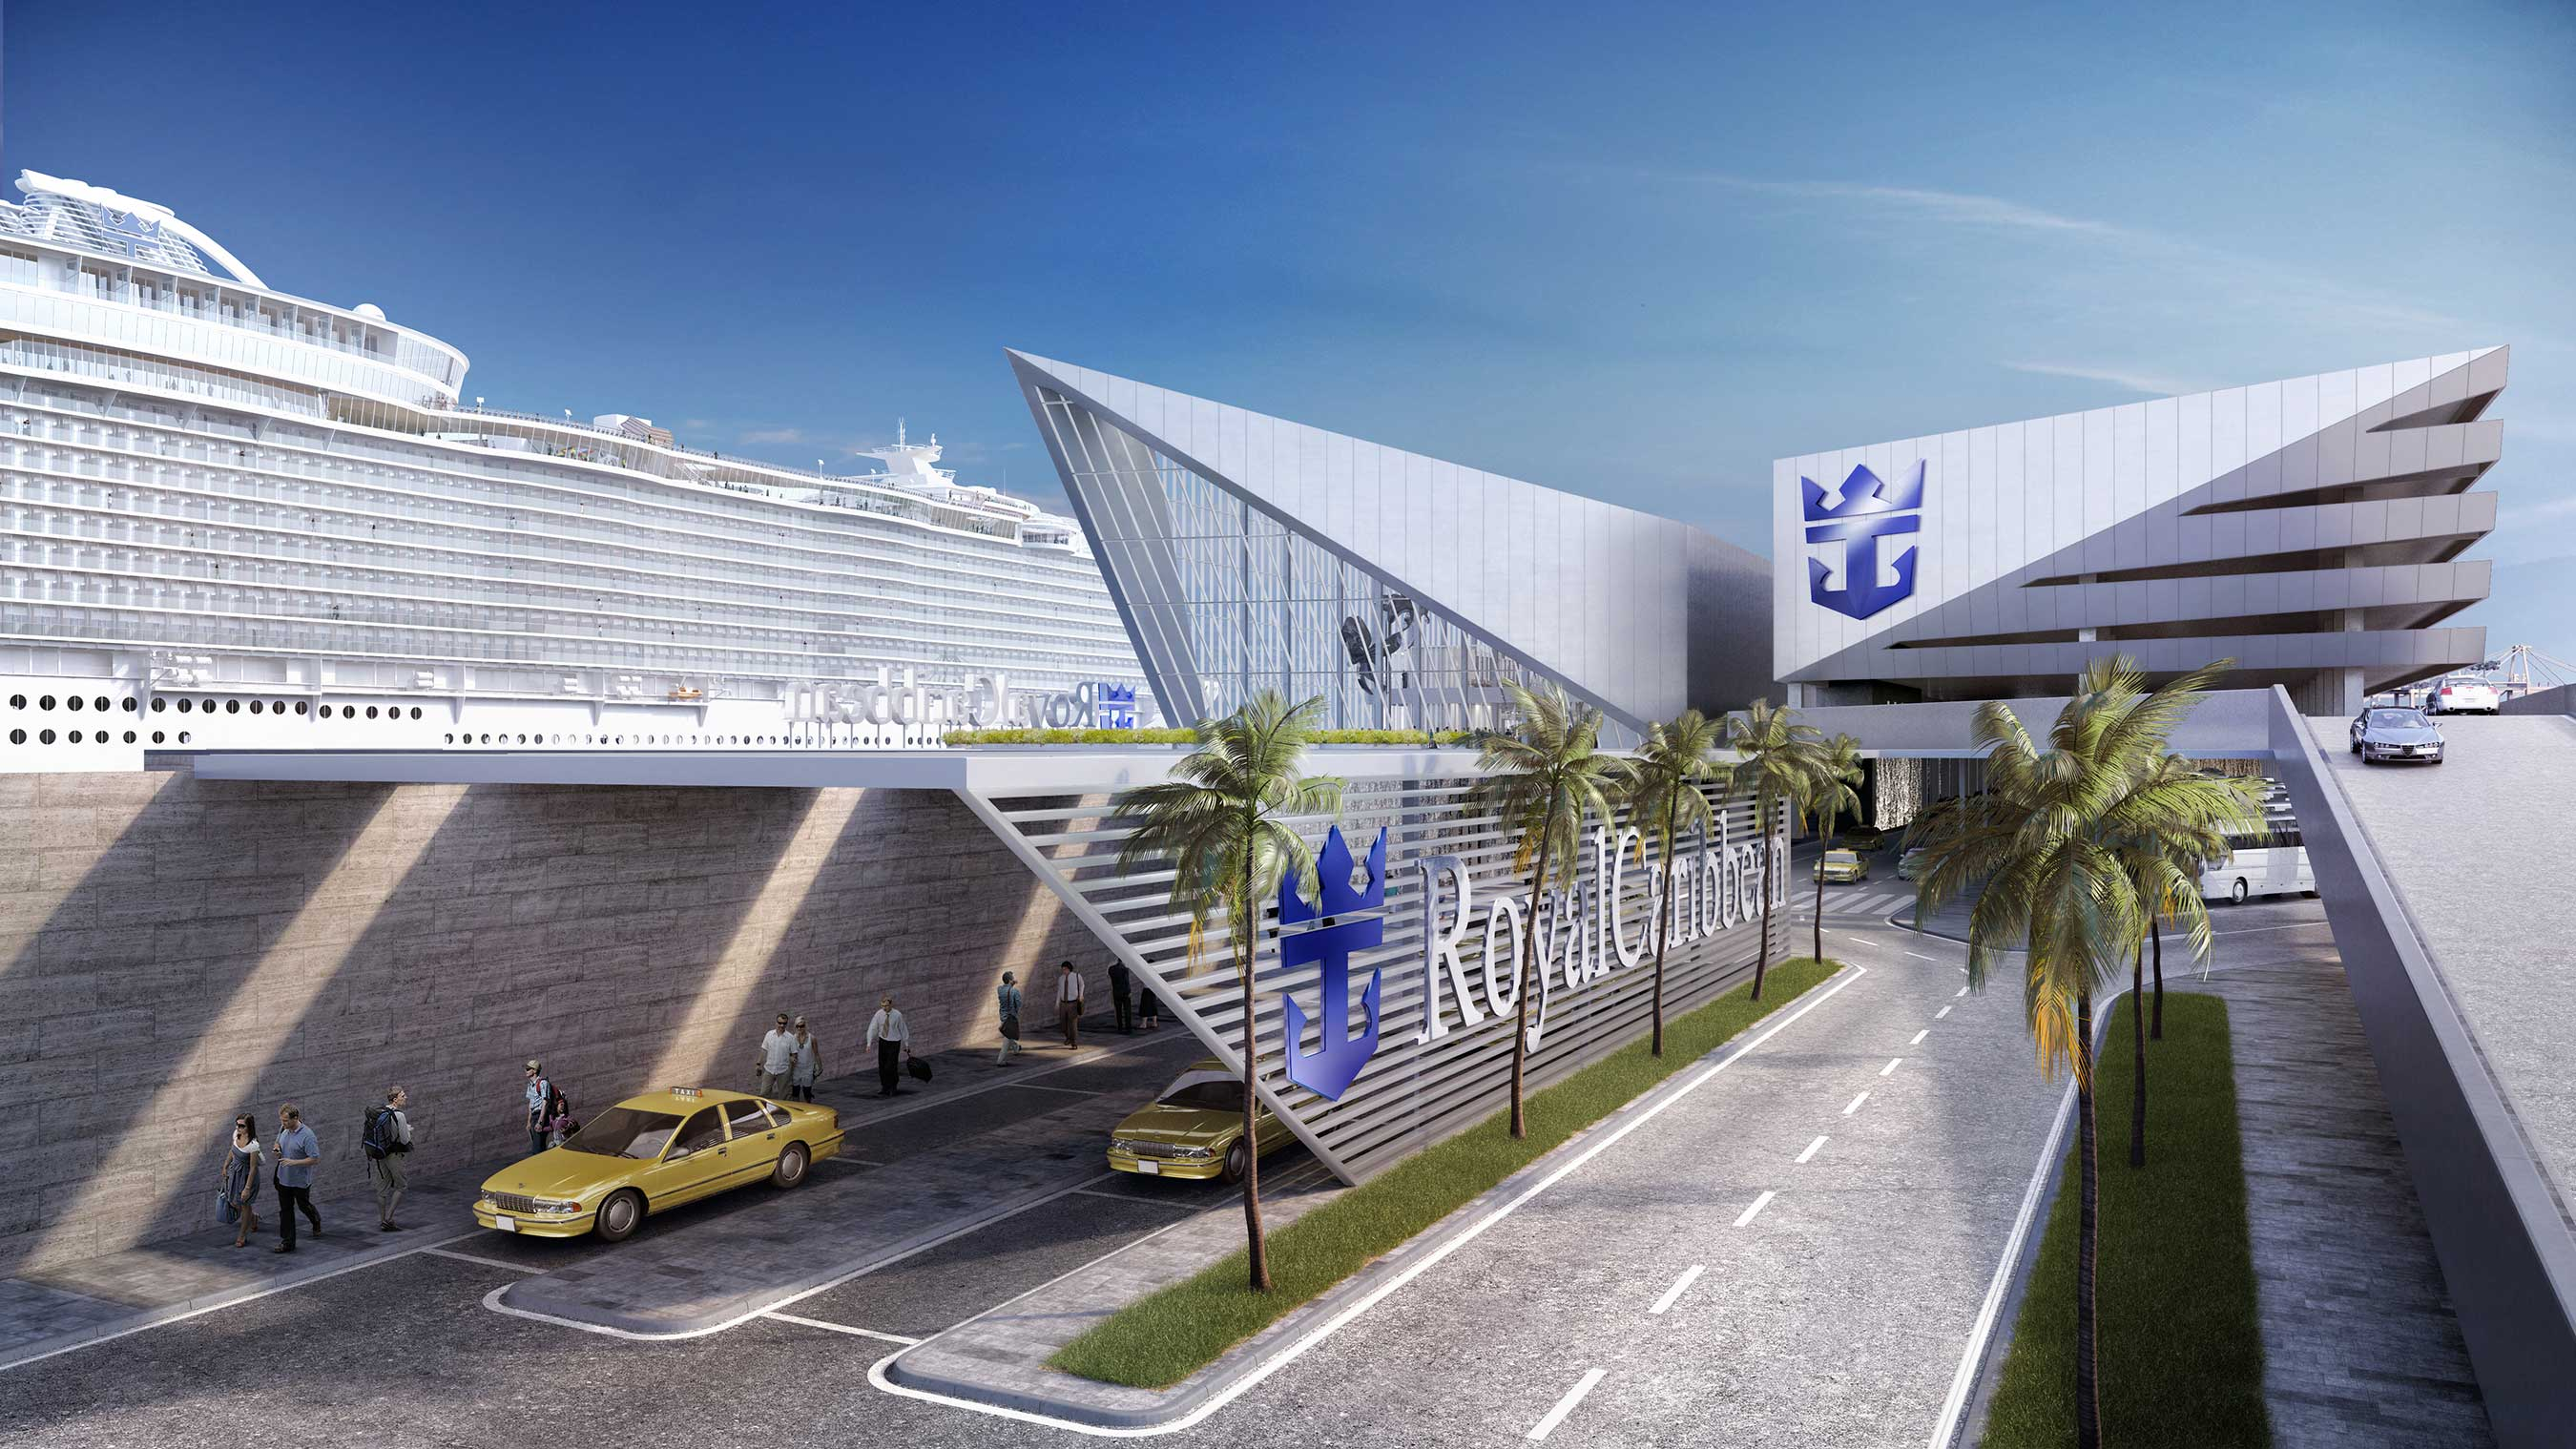 royal caribbean signs agreement with miami dade county to build